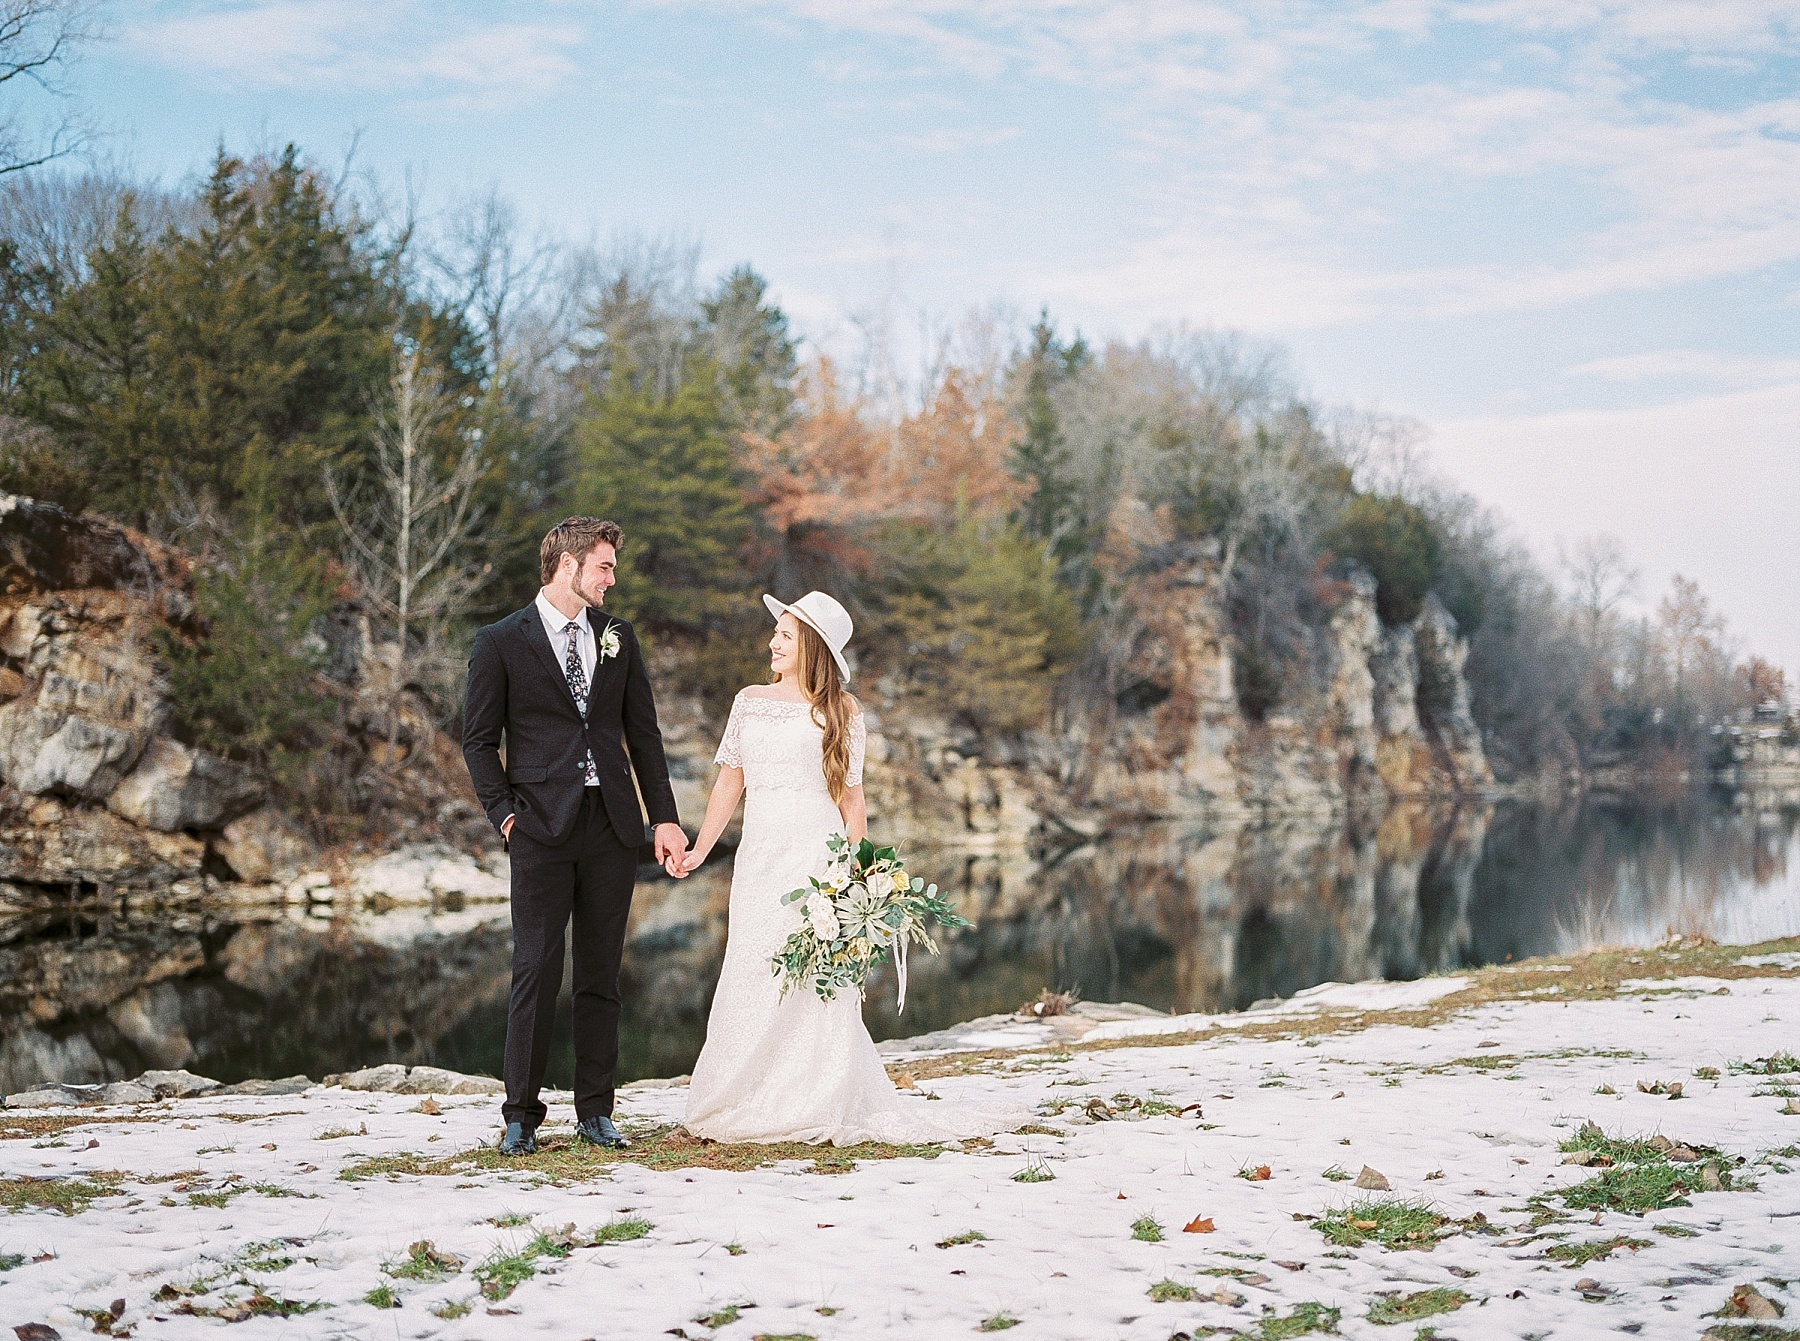 Snowy Winter Wedding at Wildcliff Events Lake With Earthy Jewel Tones and Organic Refined Style by Kelsi Kliethermes Photography Kansas City Missouri Wedding Photographer_0004.jpg